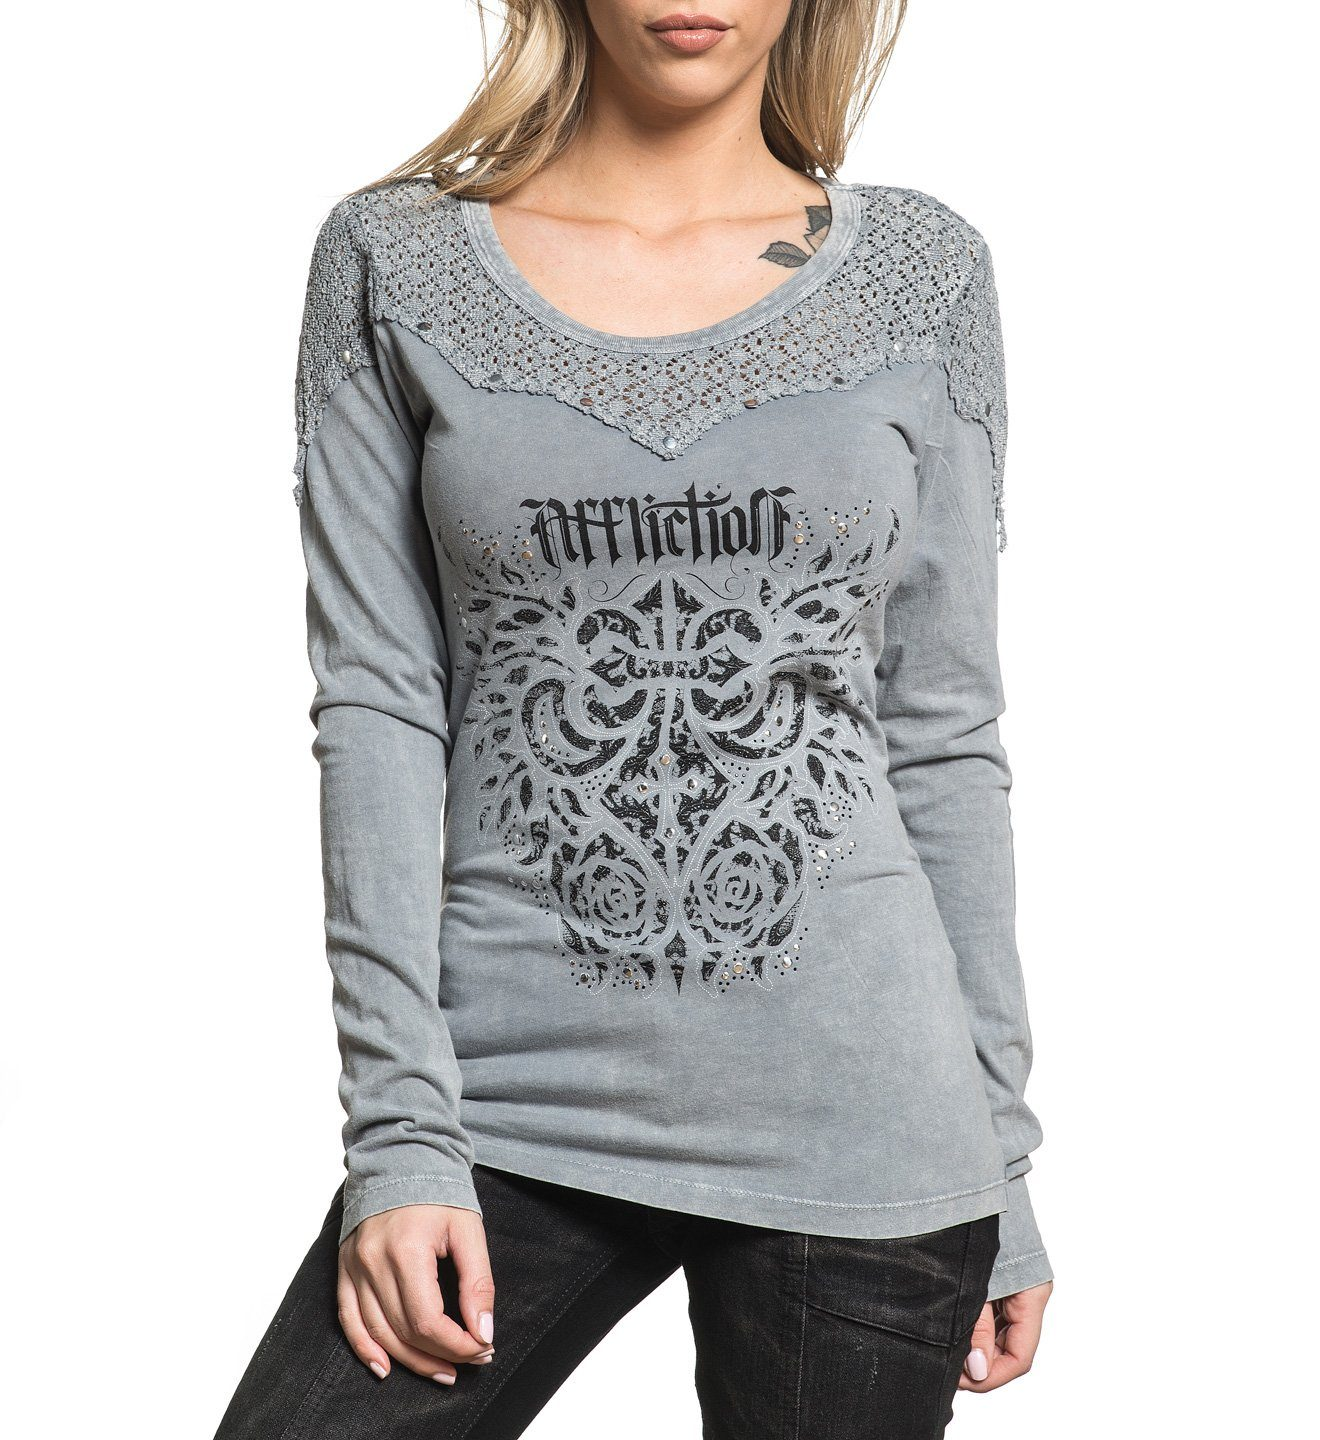 Sauvignon - Womens Long Sleeve Tees - Affliction Clothing